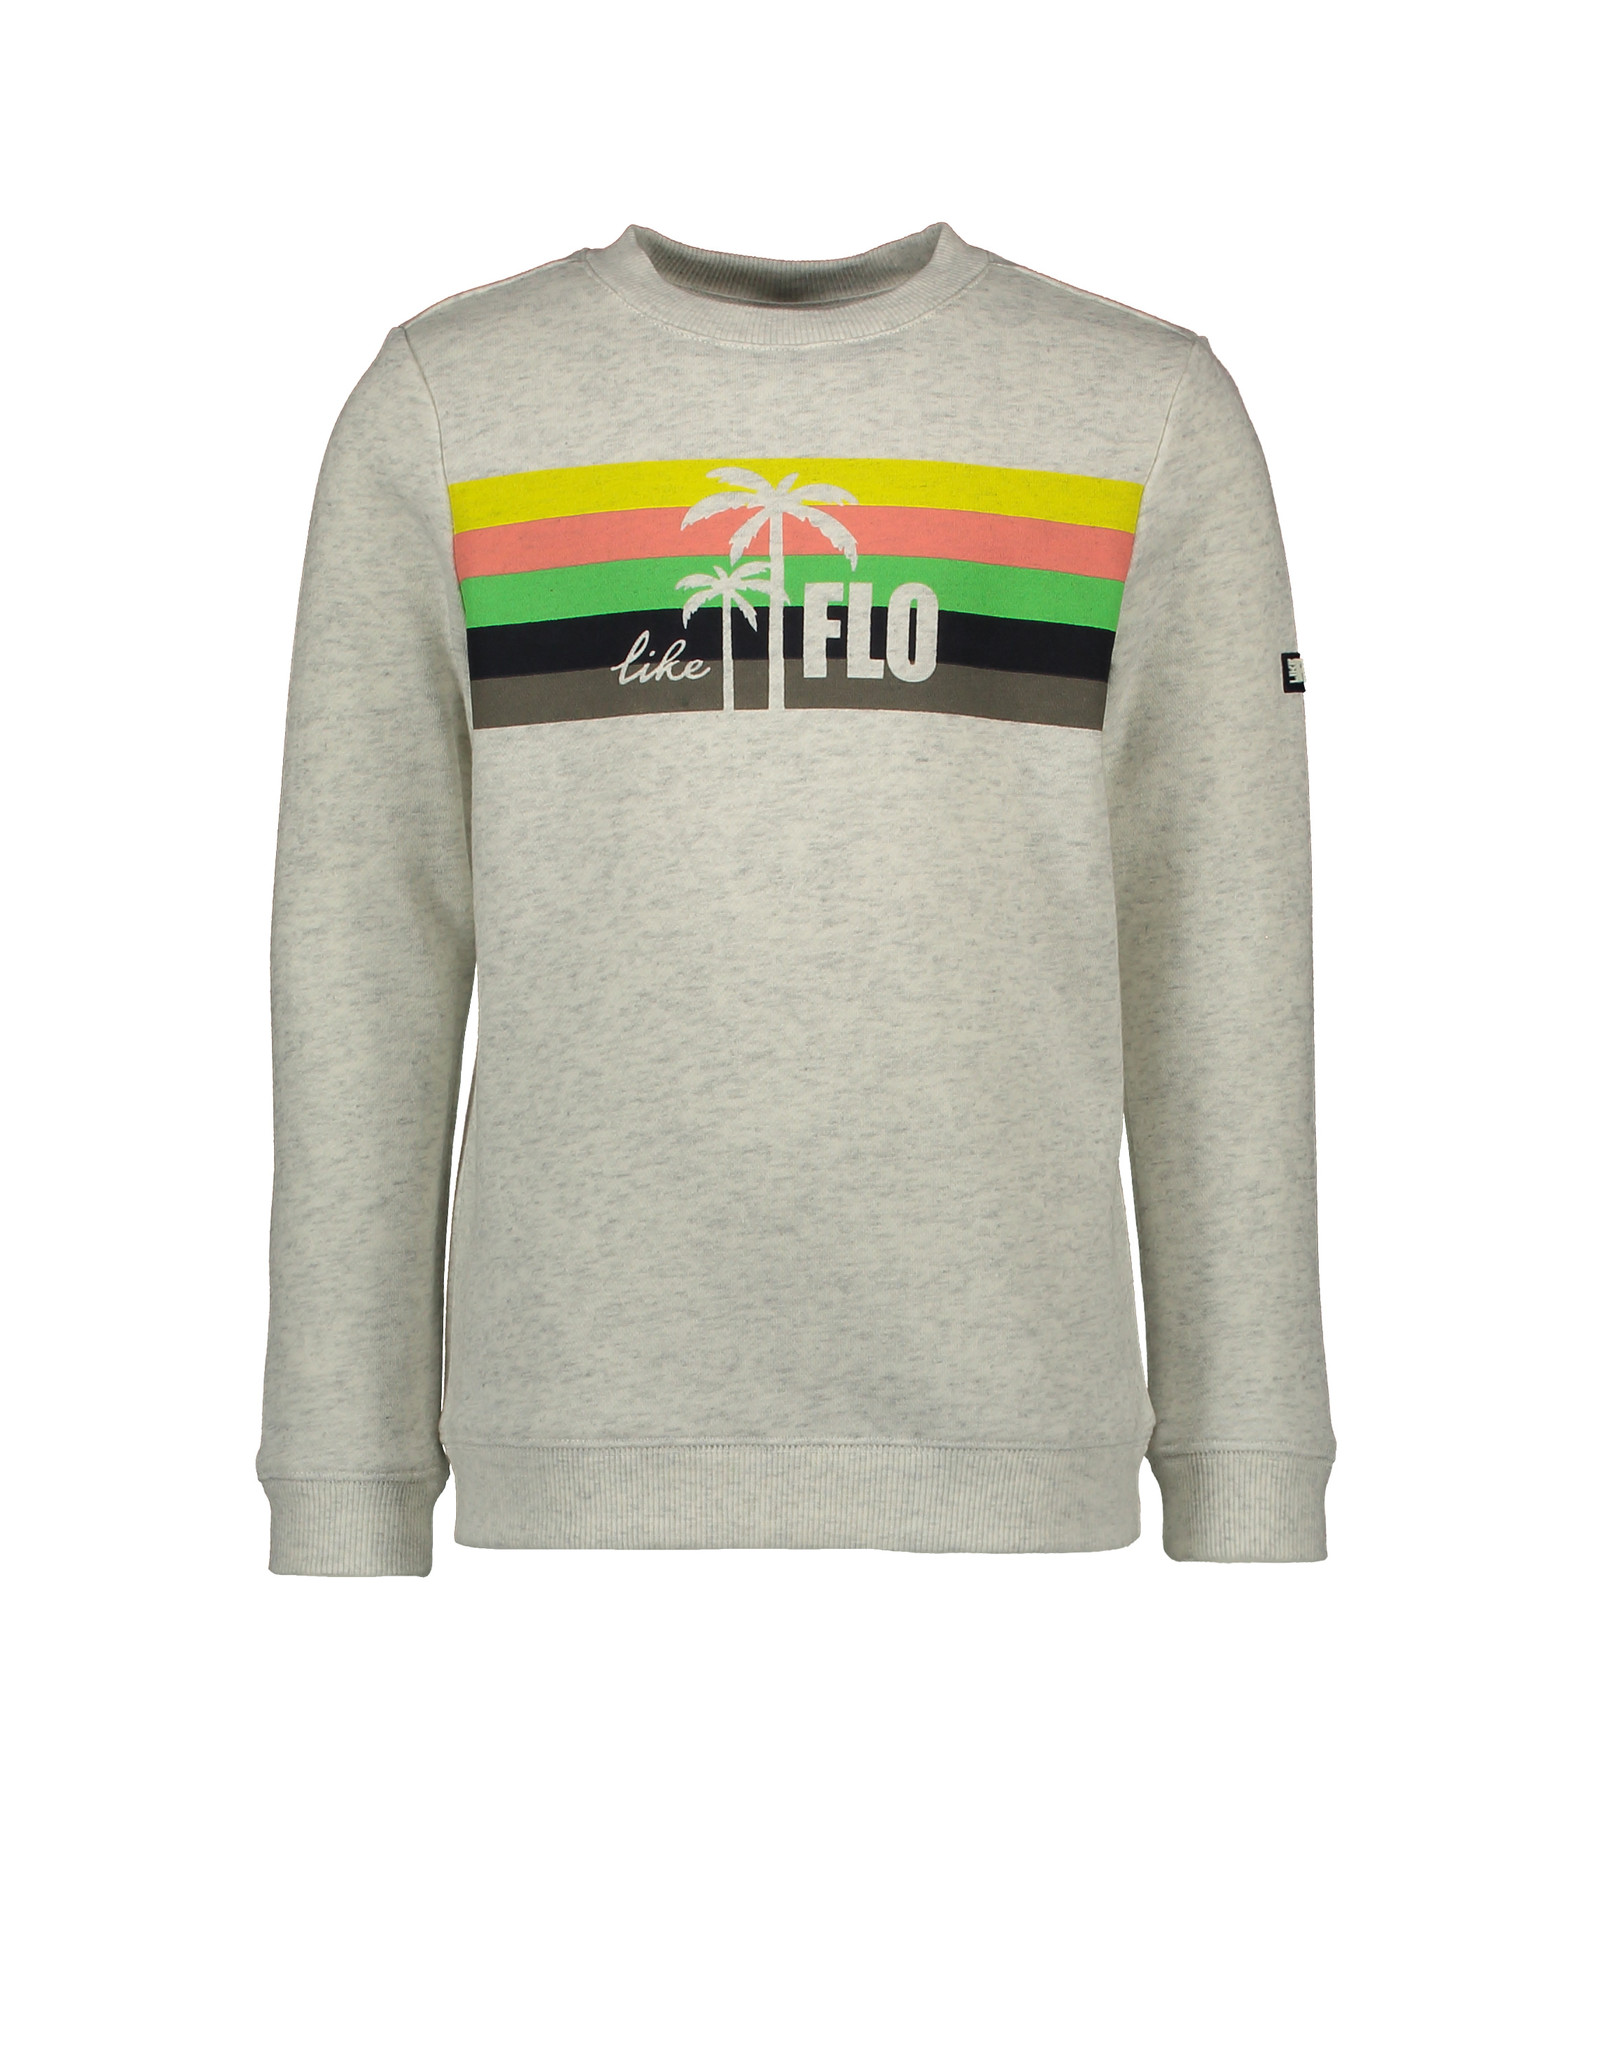 Like Flo Flo boys sweater ecru